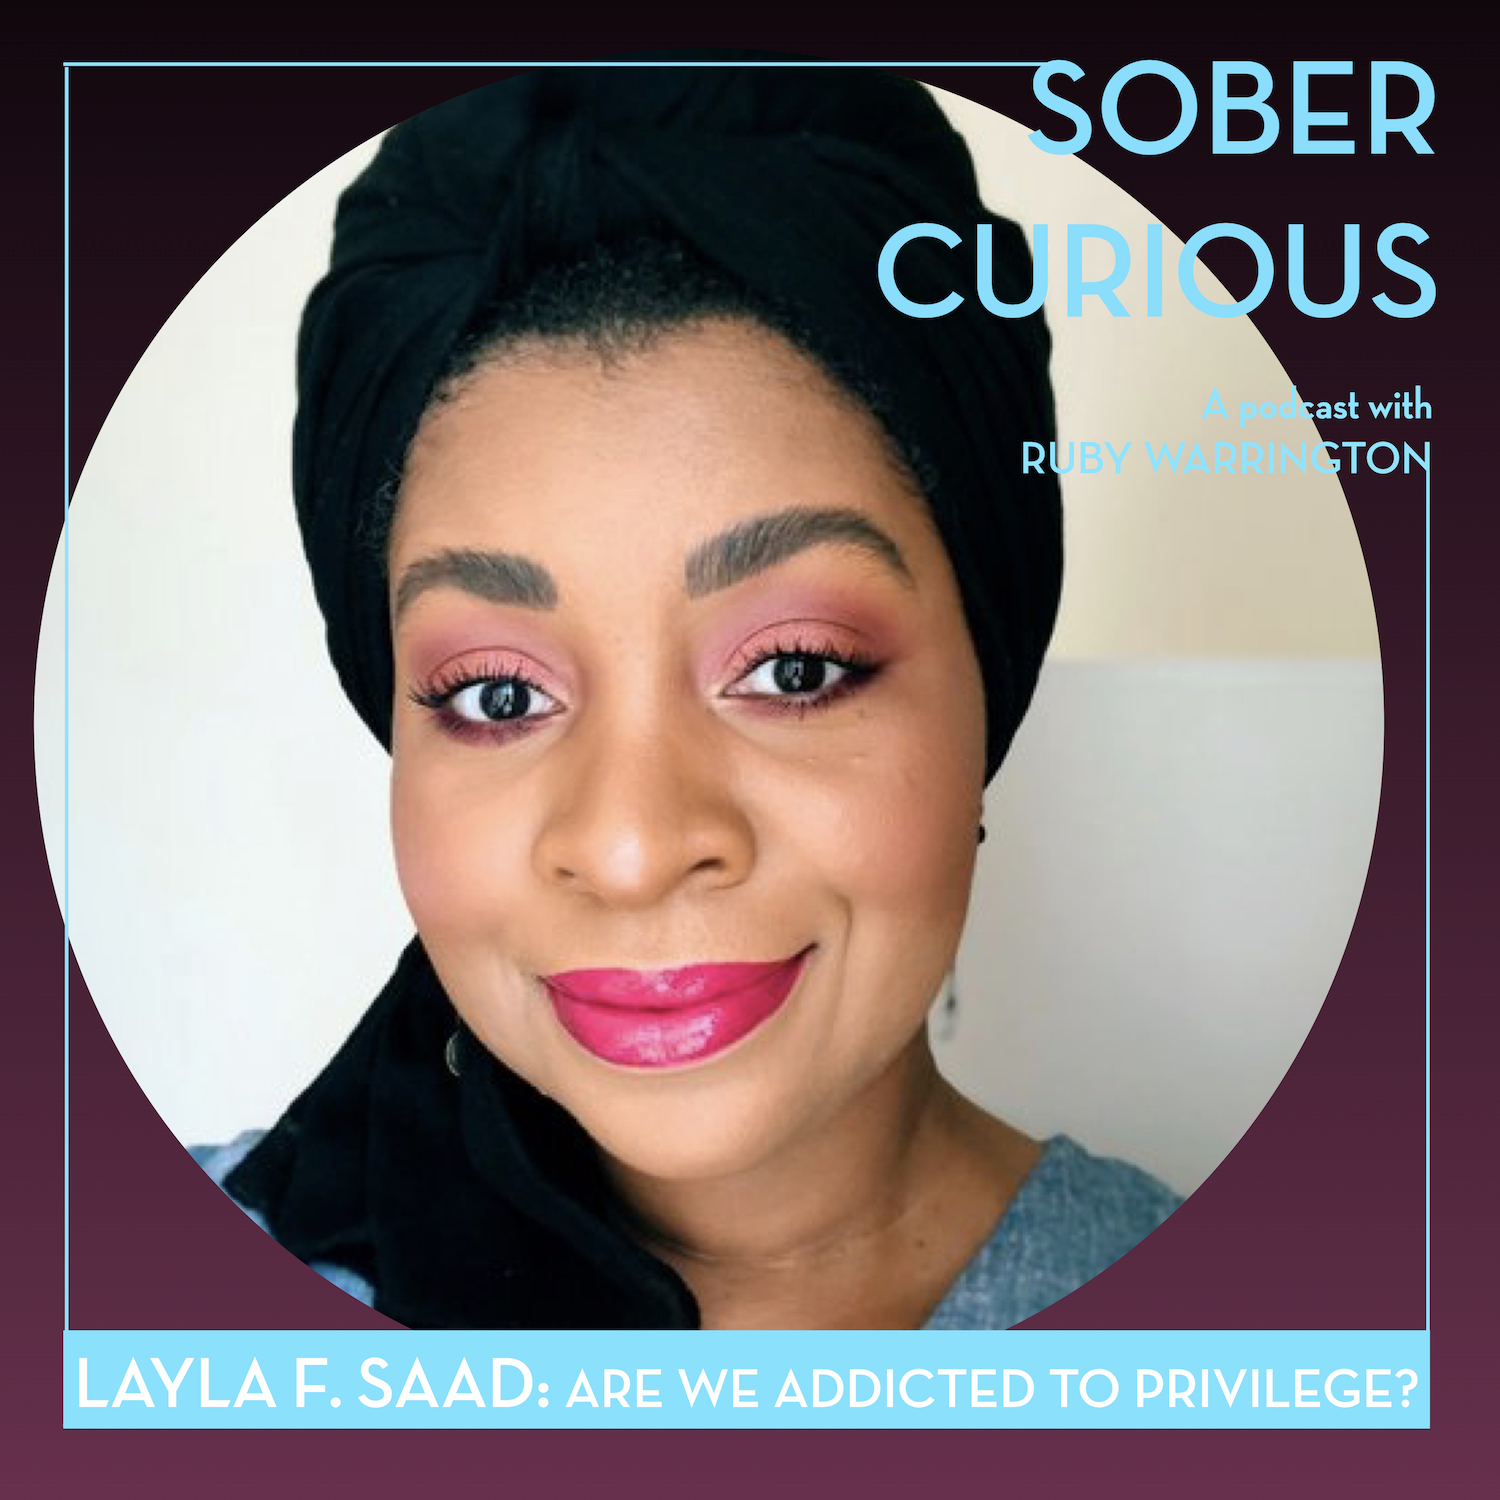 Layla F. Saad Sober Curious podcast Ruby Warrington Me And White Supremacy